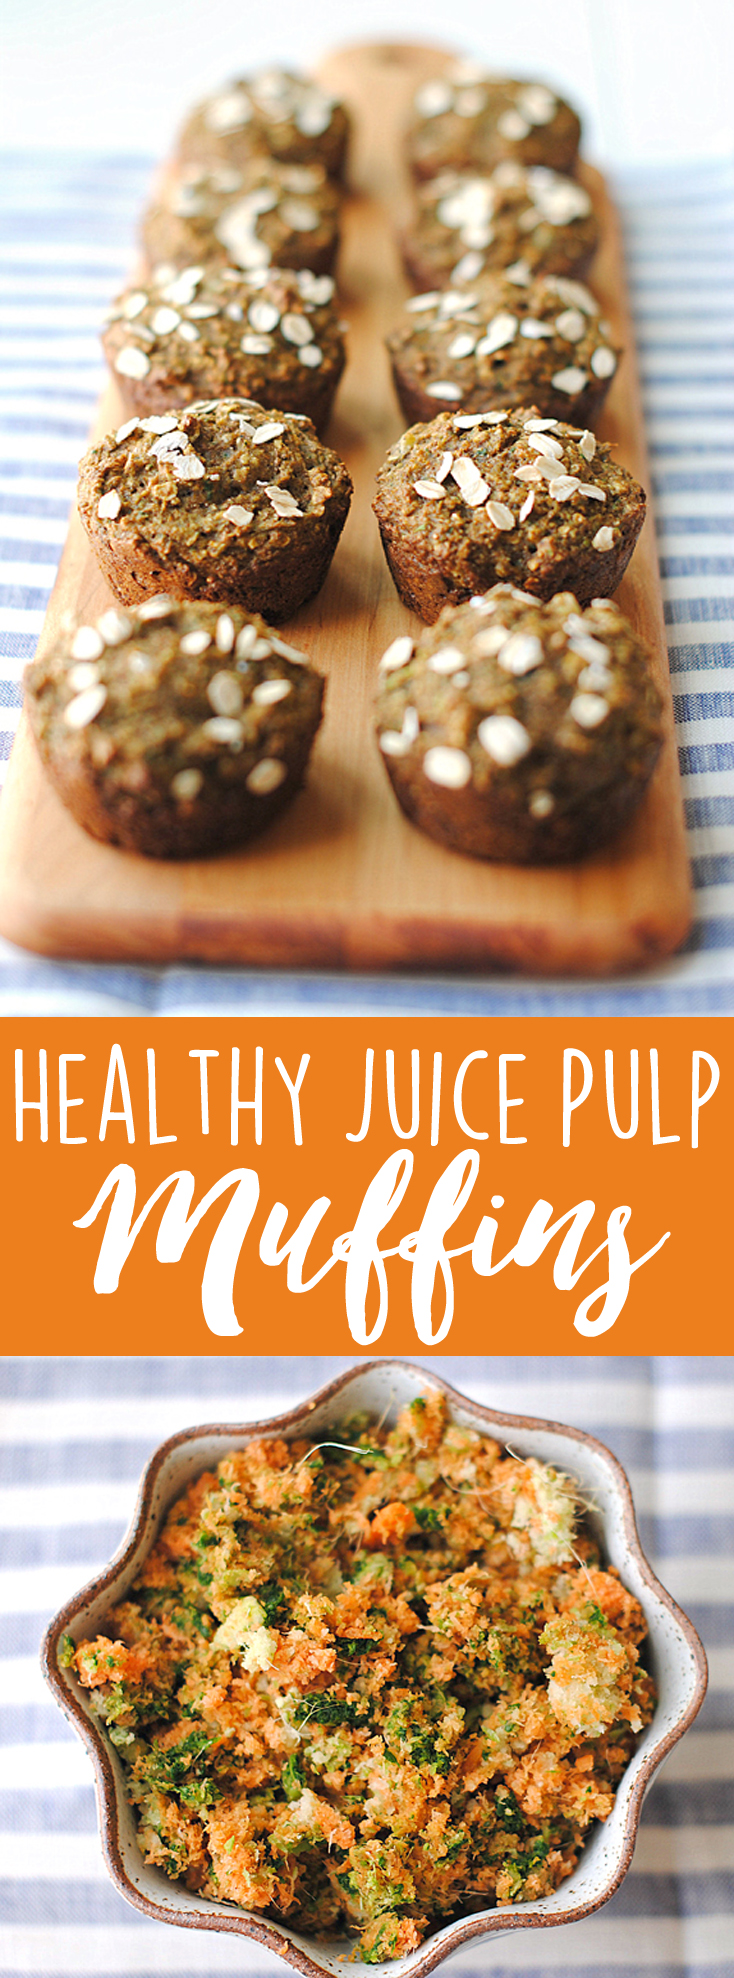 Use all that delicious leftover pulp in these Healthy Juice Pulp Muffins! | Eat Yourself Skinny